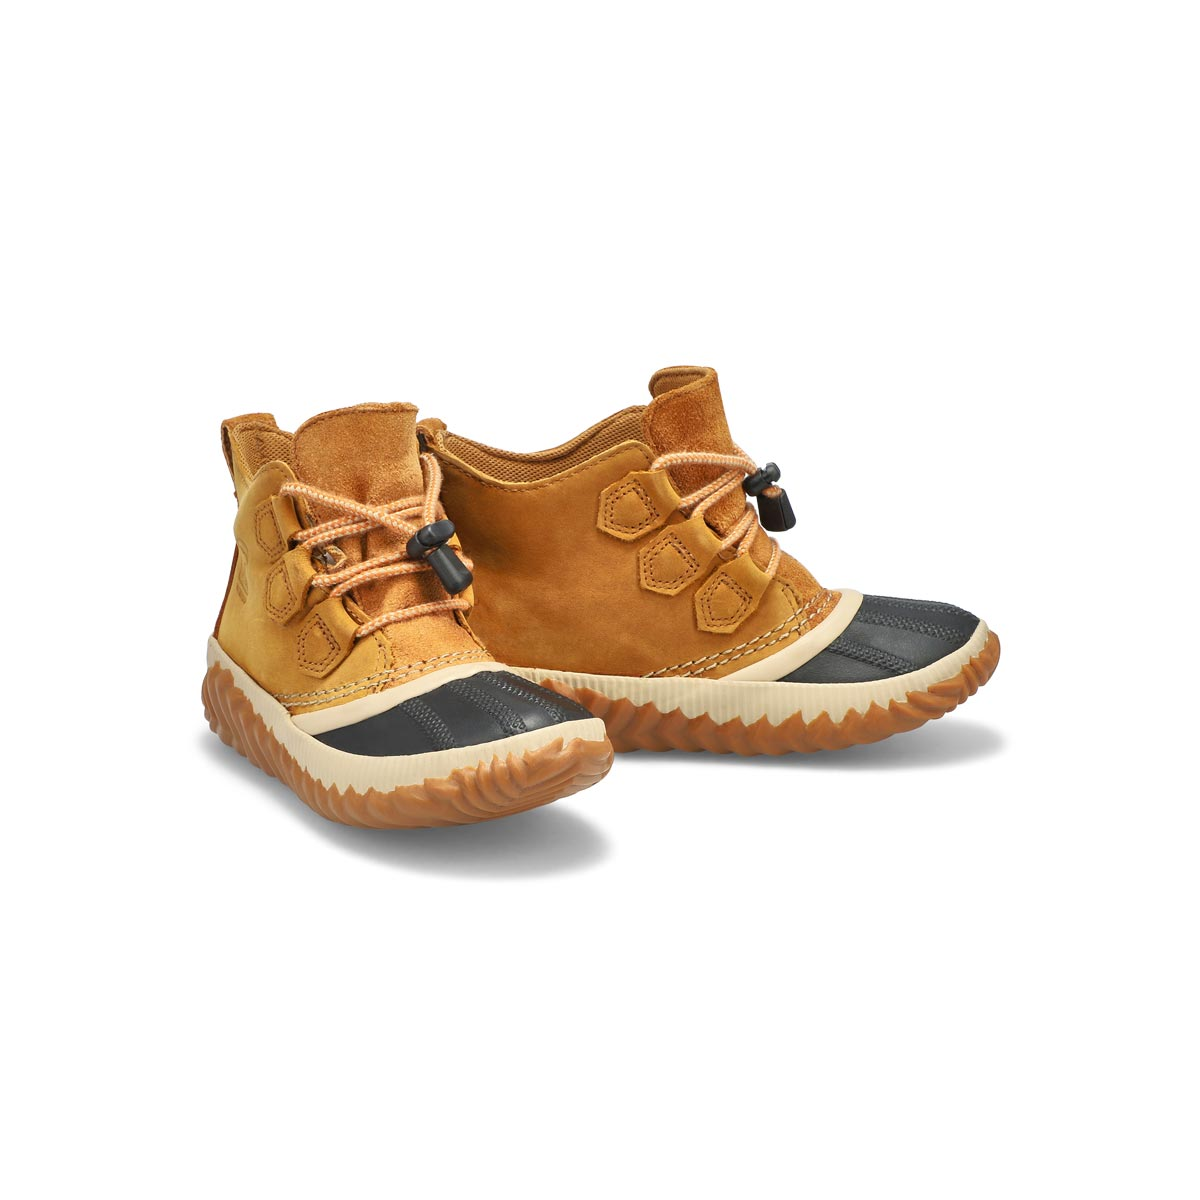 Girls' Out N About Plus Boot - Elk/Black